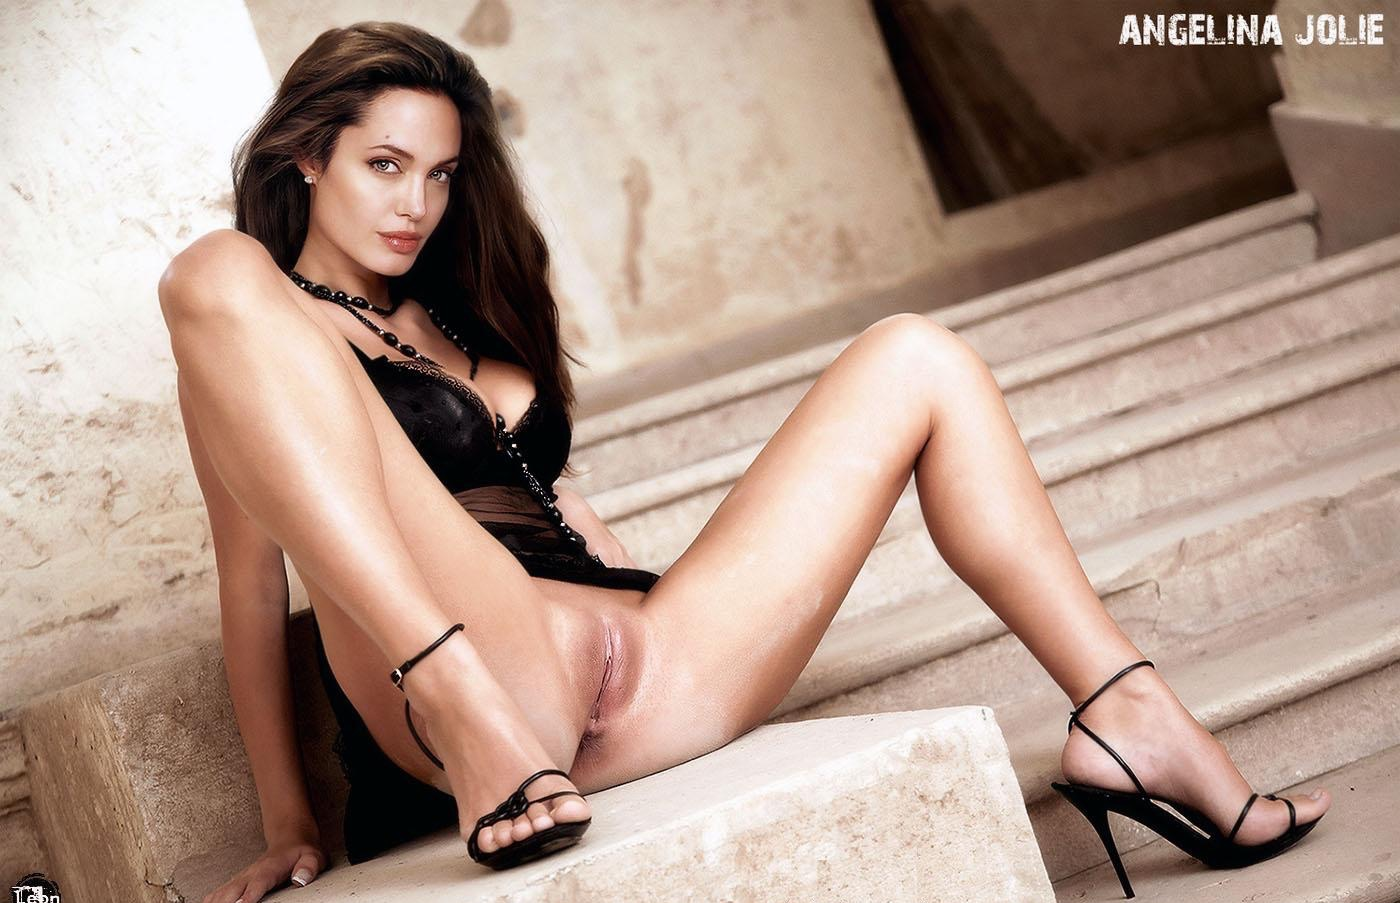 Angelina Jolie Nude Naked Xxx Sex Best Fake Photos 67 Pics-5021